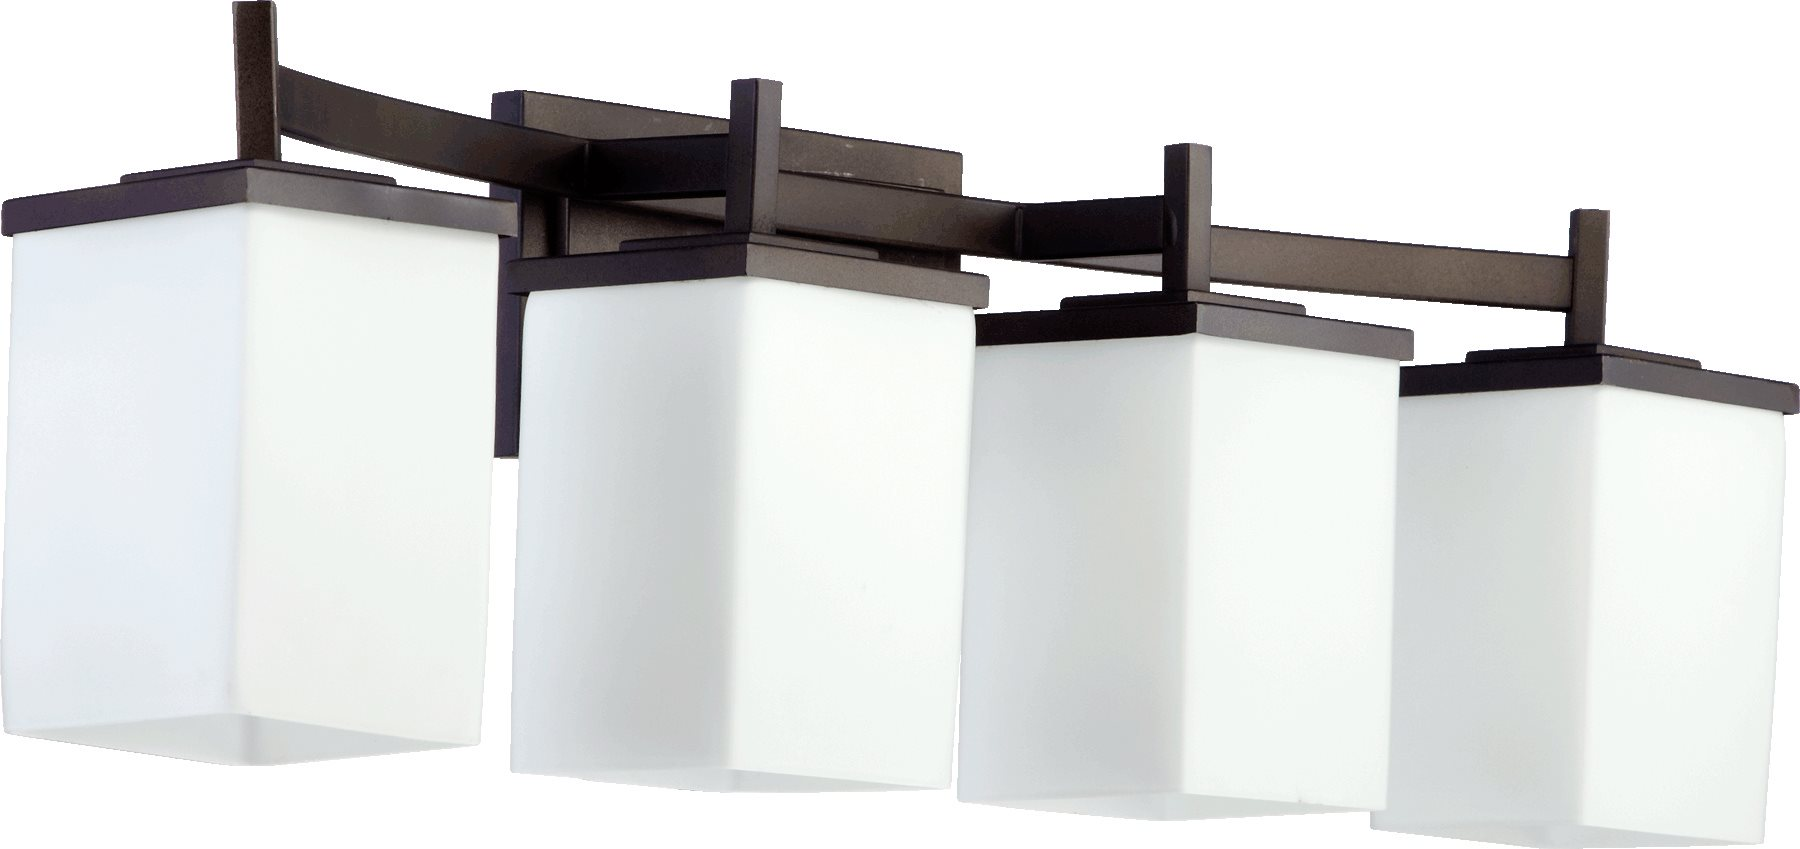 Delta modern contemporary bathroom vanity light xrq for Contemporary bathroom vanity lighting